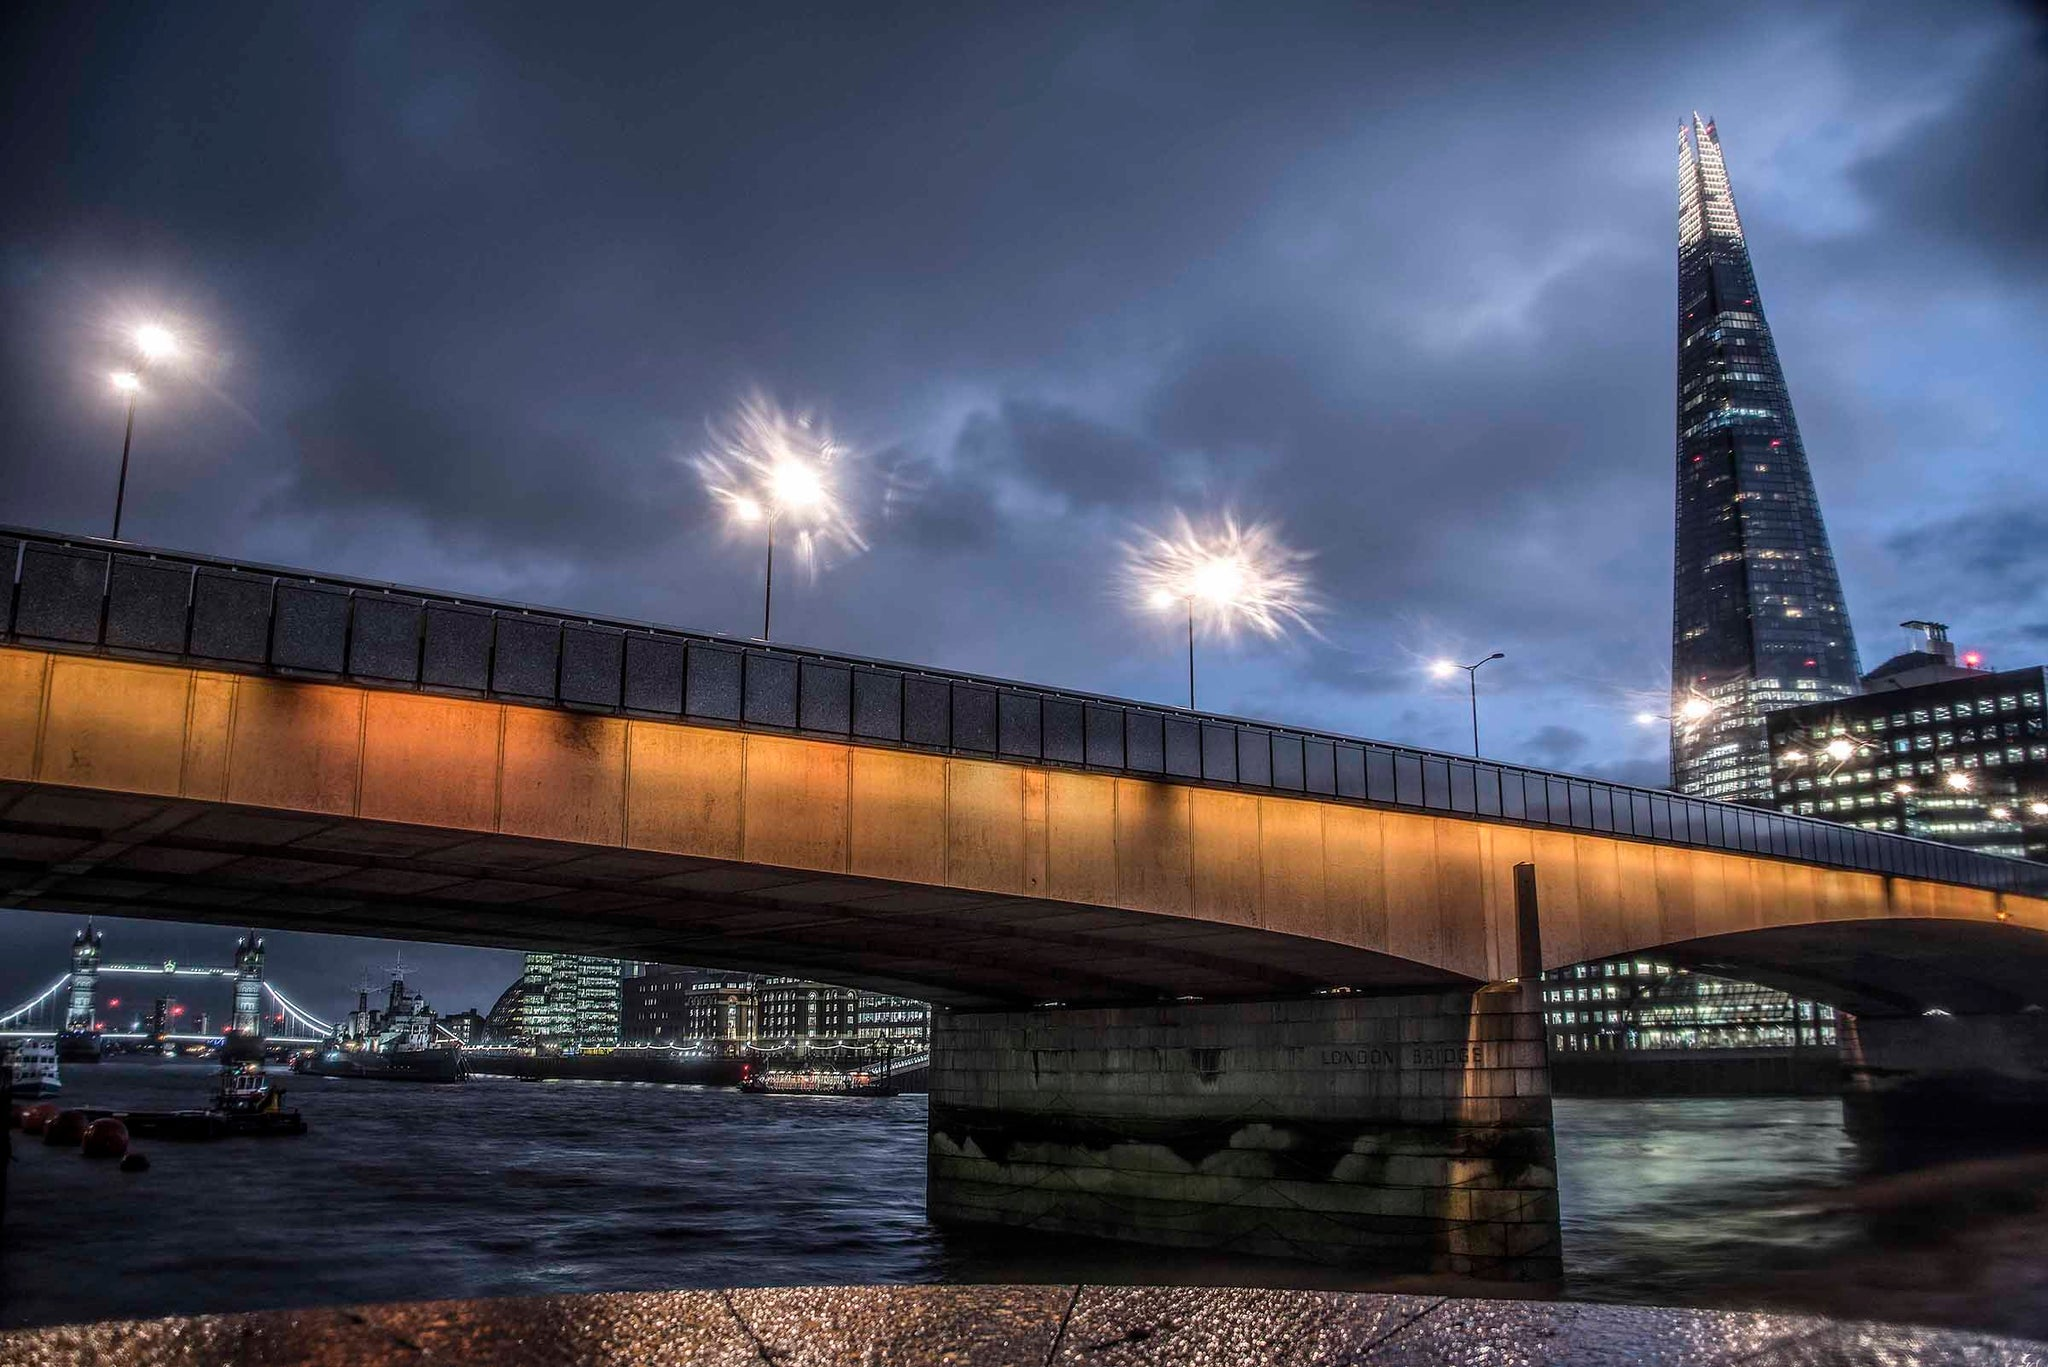 London Bridge and The Shard at night